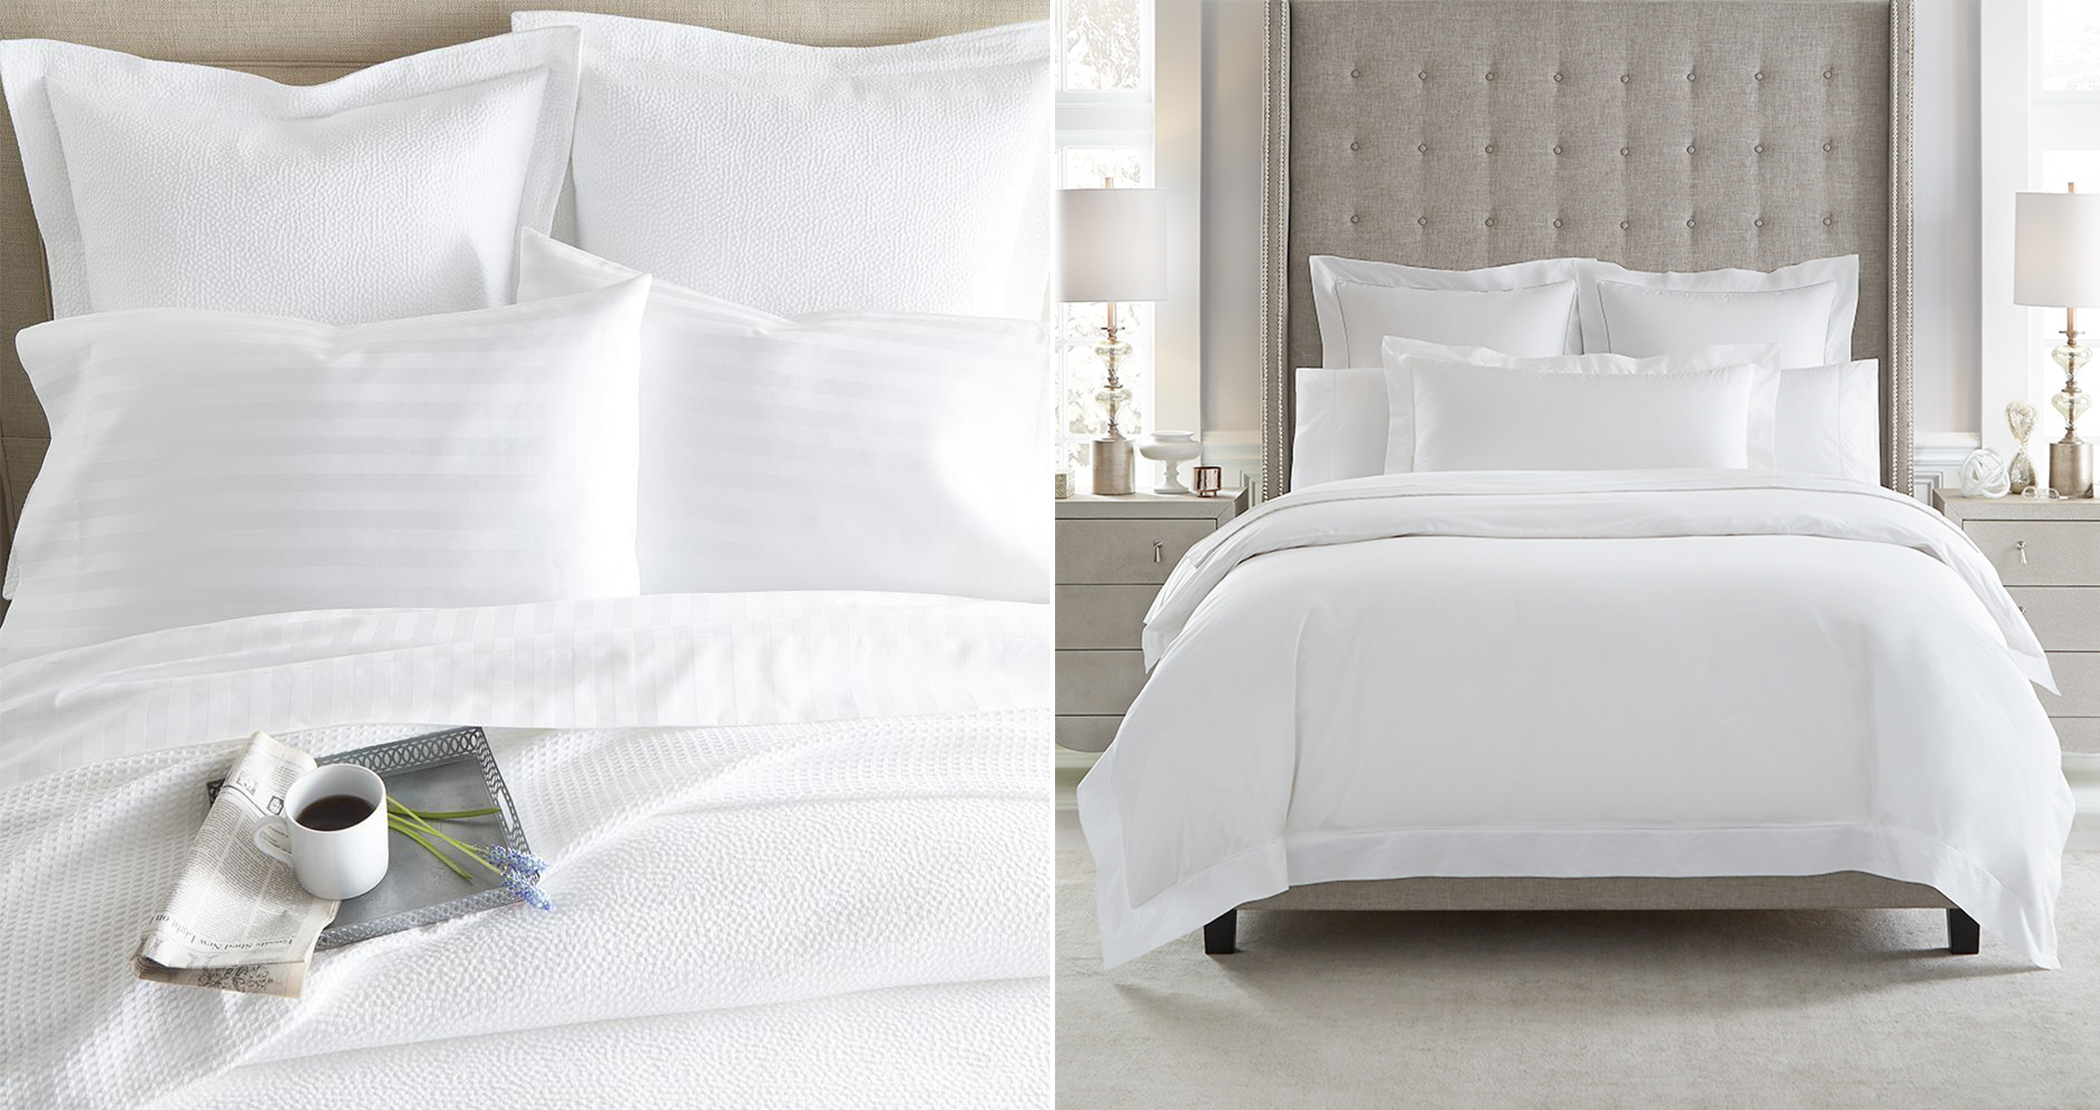 How To Mix Match Your Bedding Kathy Kuo Blog Kathy Kuo